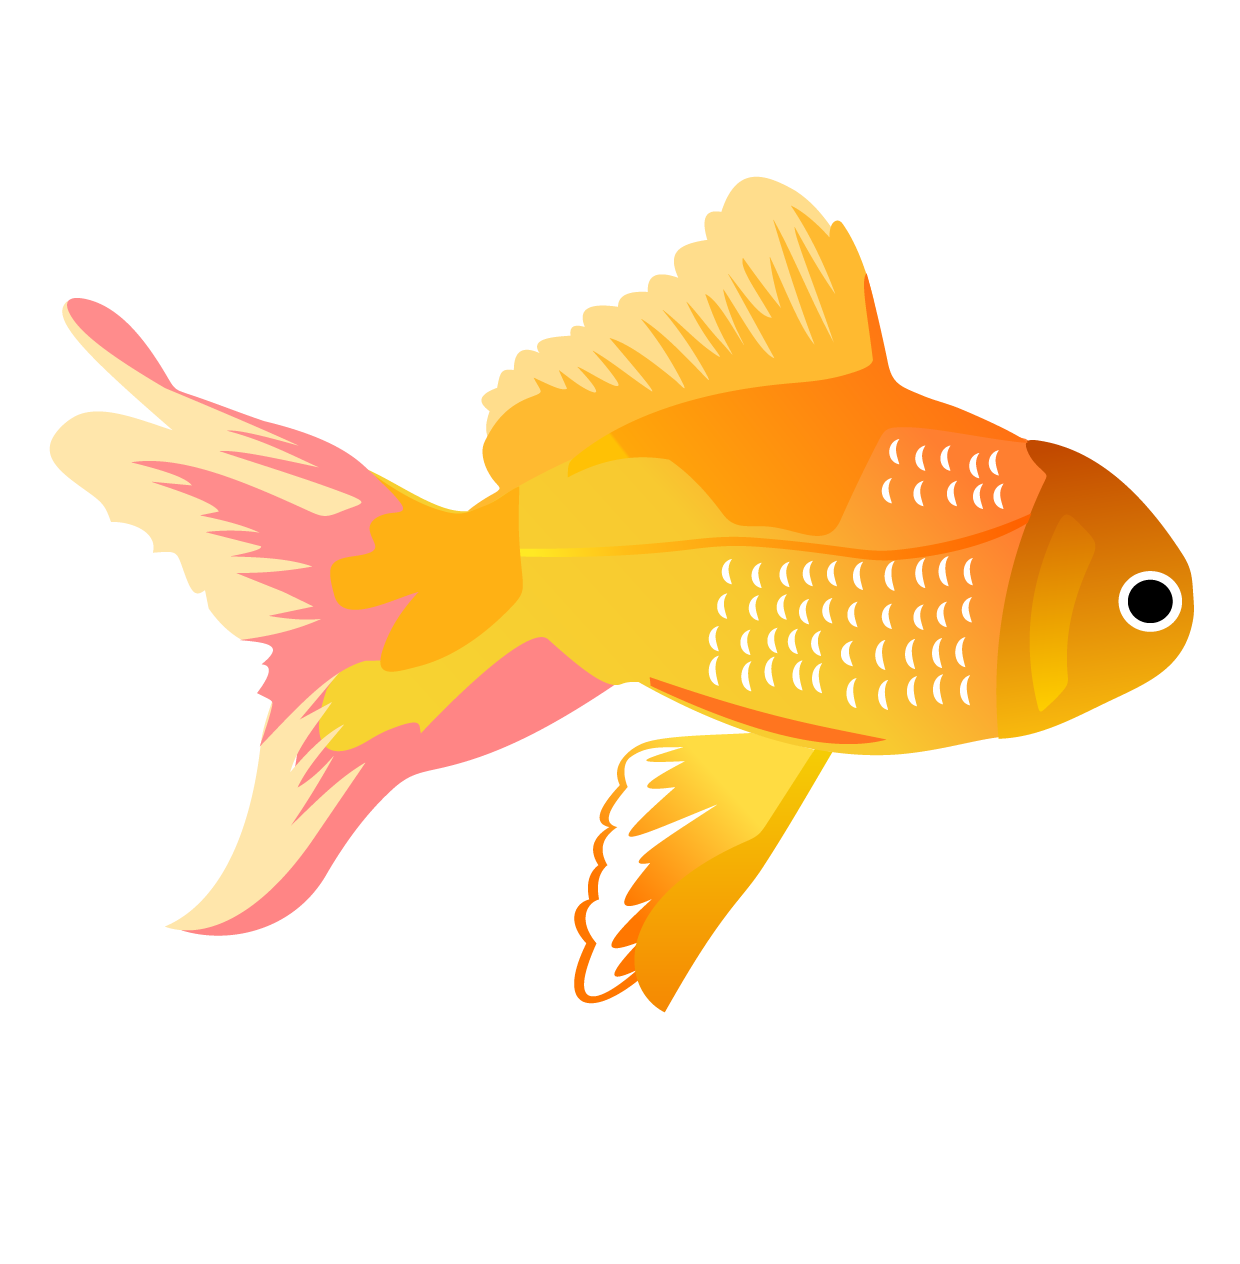 Clipart koi fish png stock Koi Carassius auratus Fish Clip art - Yellow tropical fish 1240*1264 ... png stock